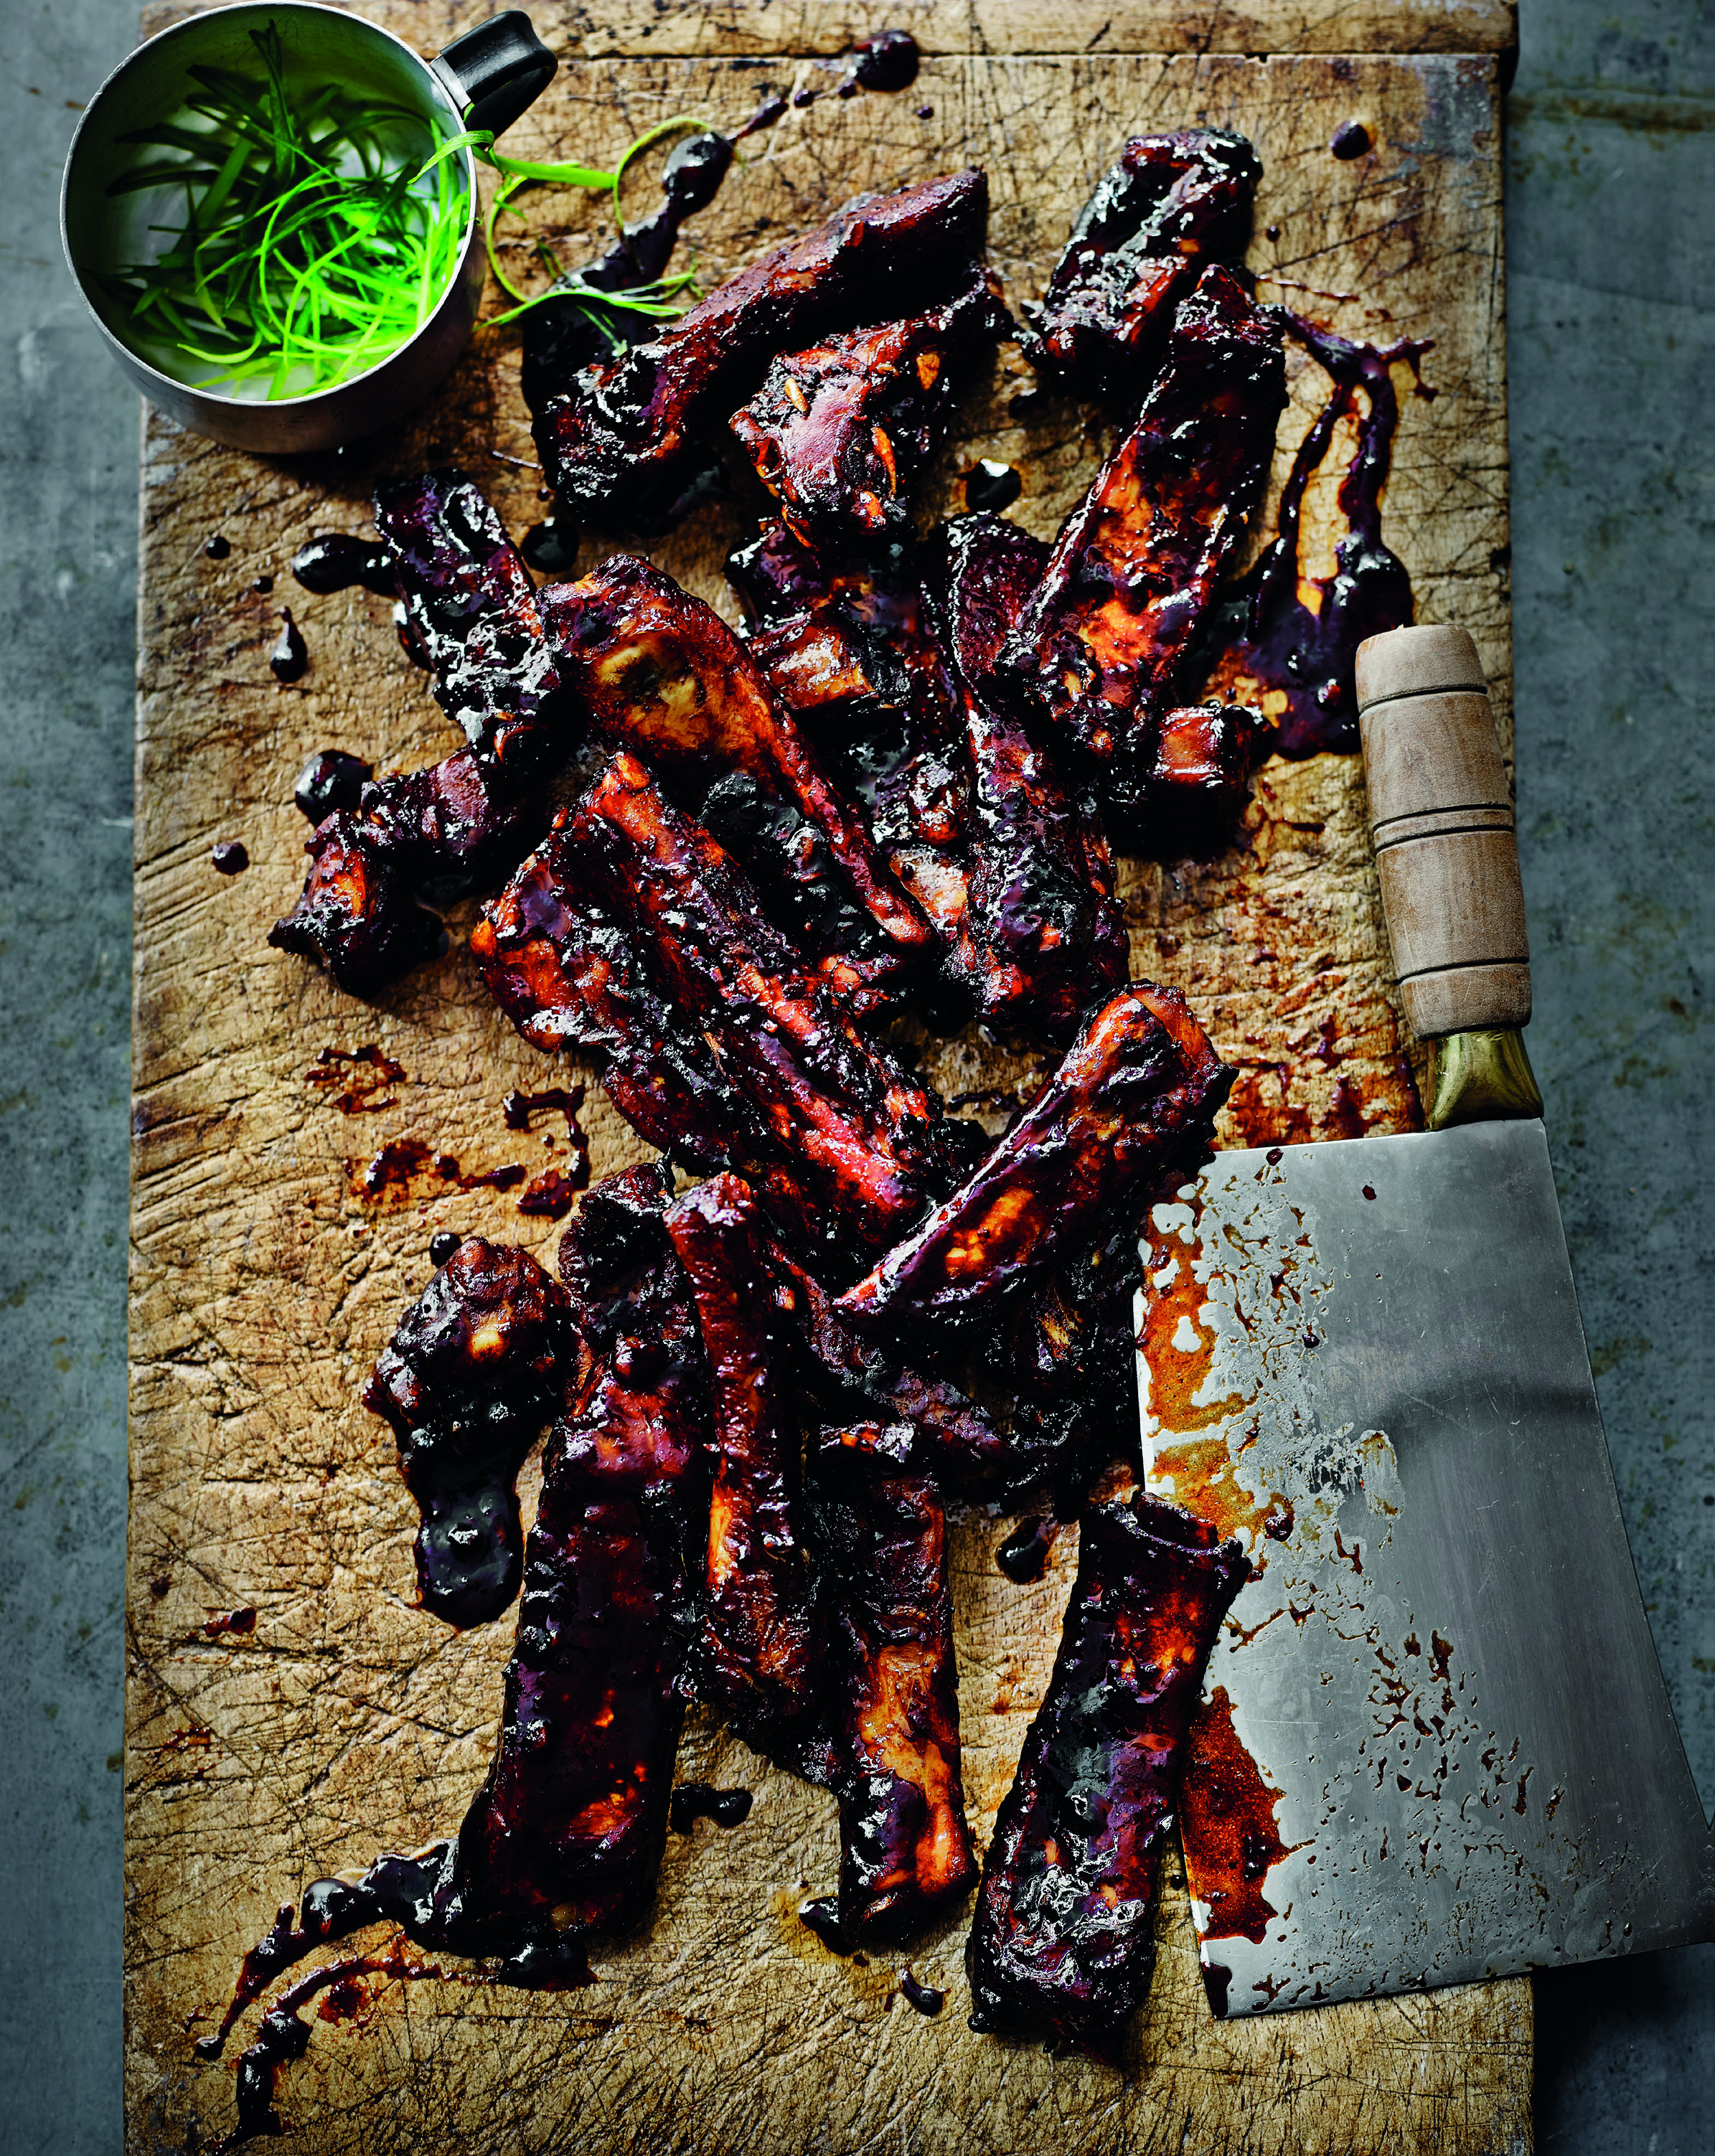 Barbecued hoisin and cola ribs